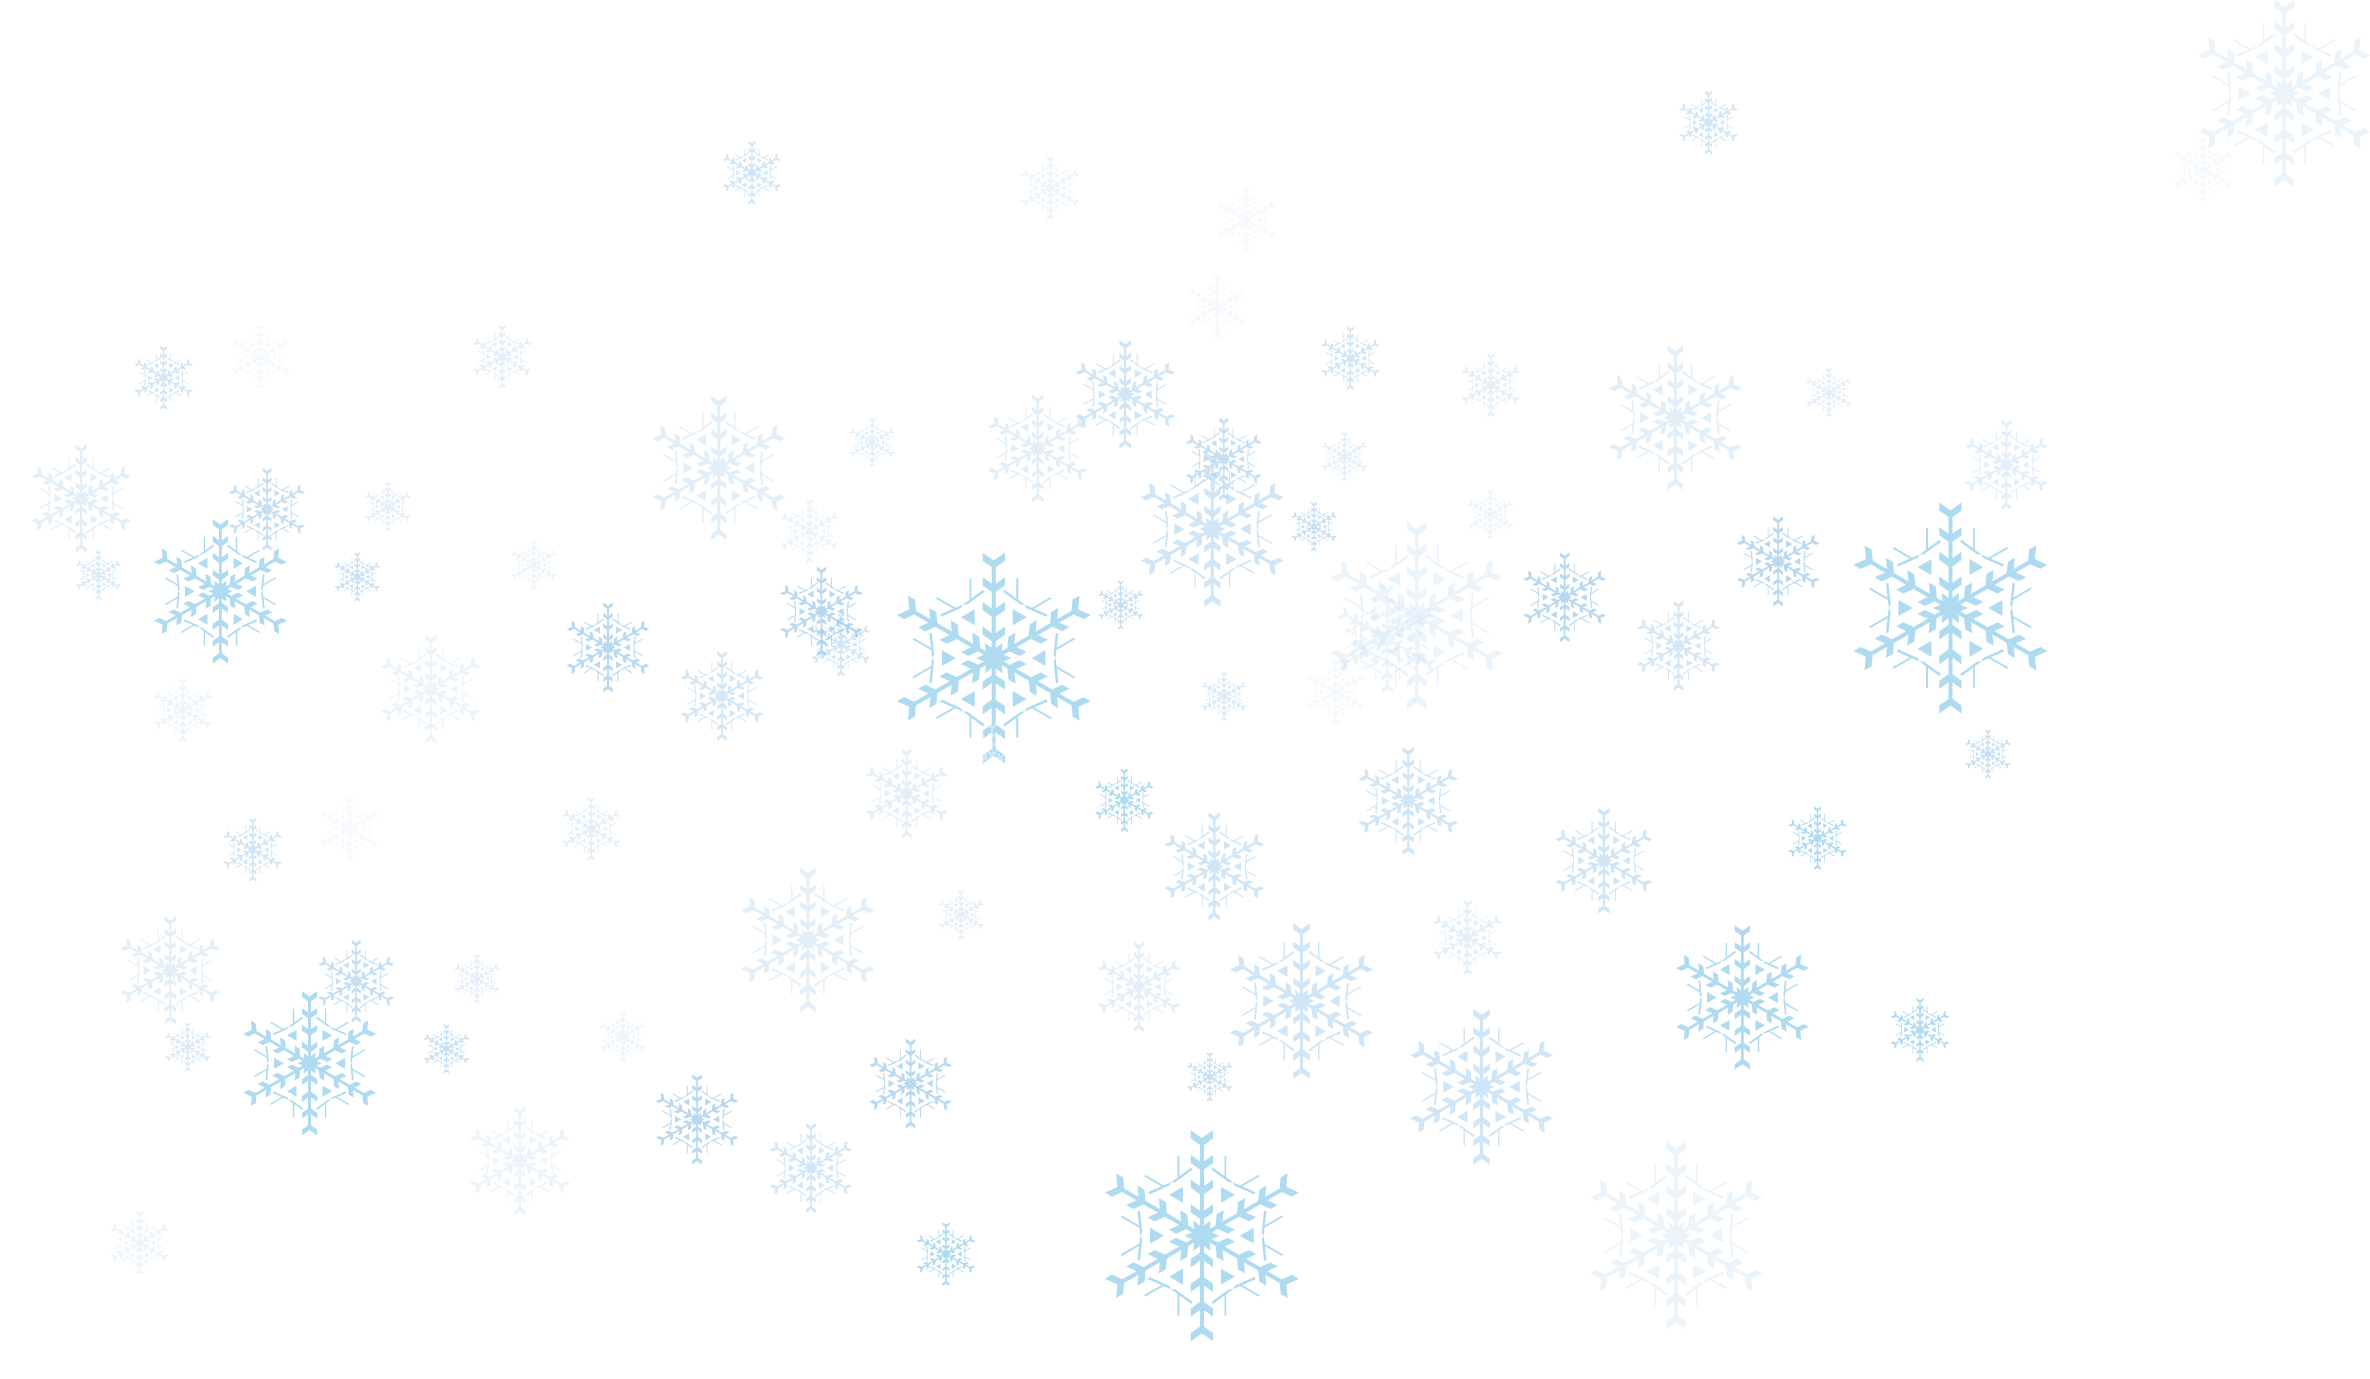 White snowflake with no background clipart image royalty free download 28+ Collection of Snowflake Clipart Background | High quality, free ... image royalty free download